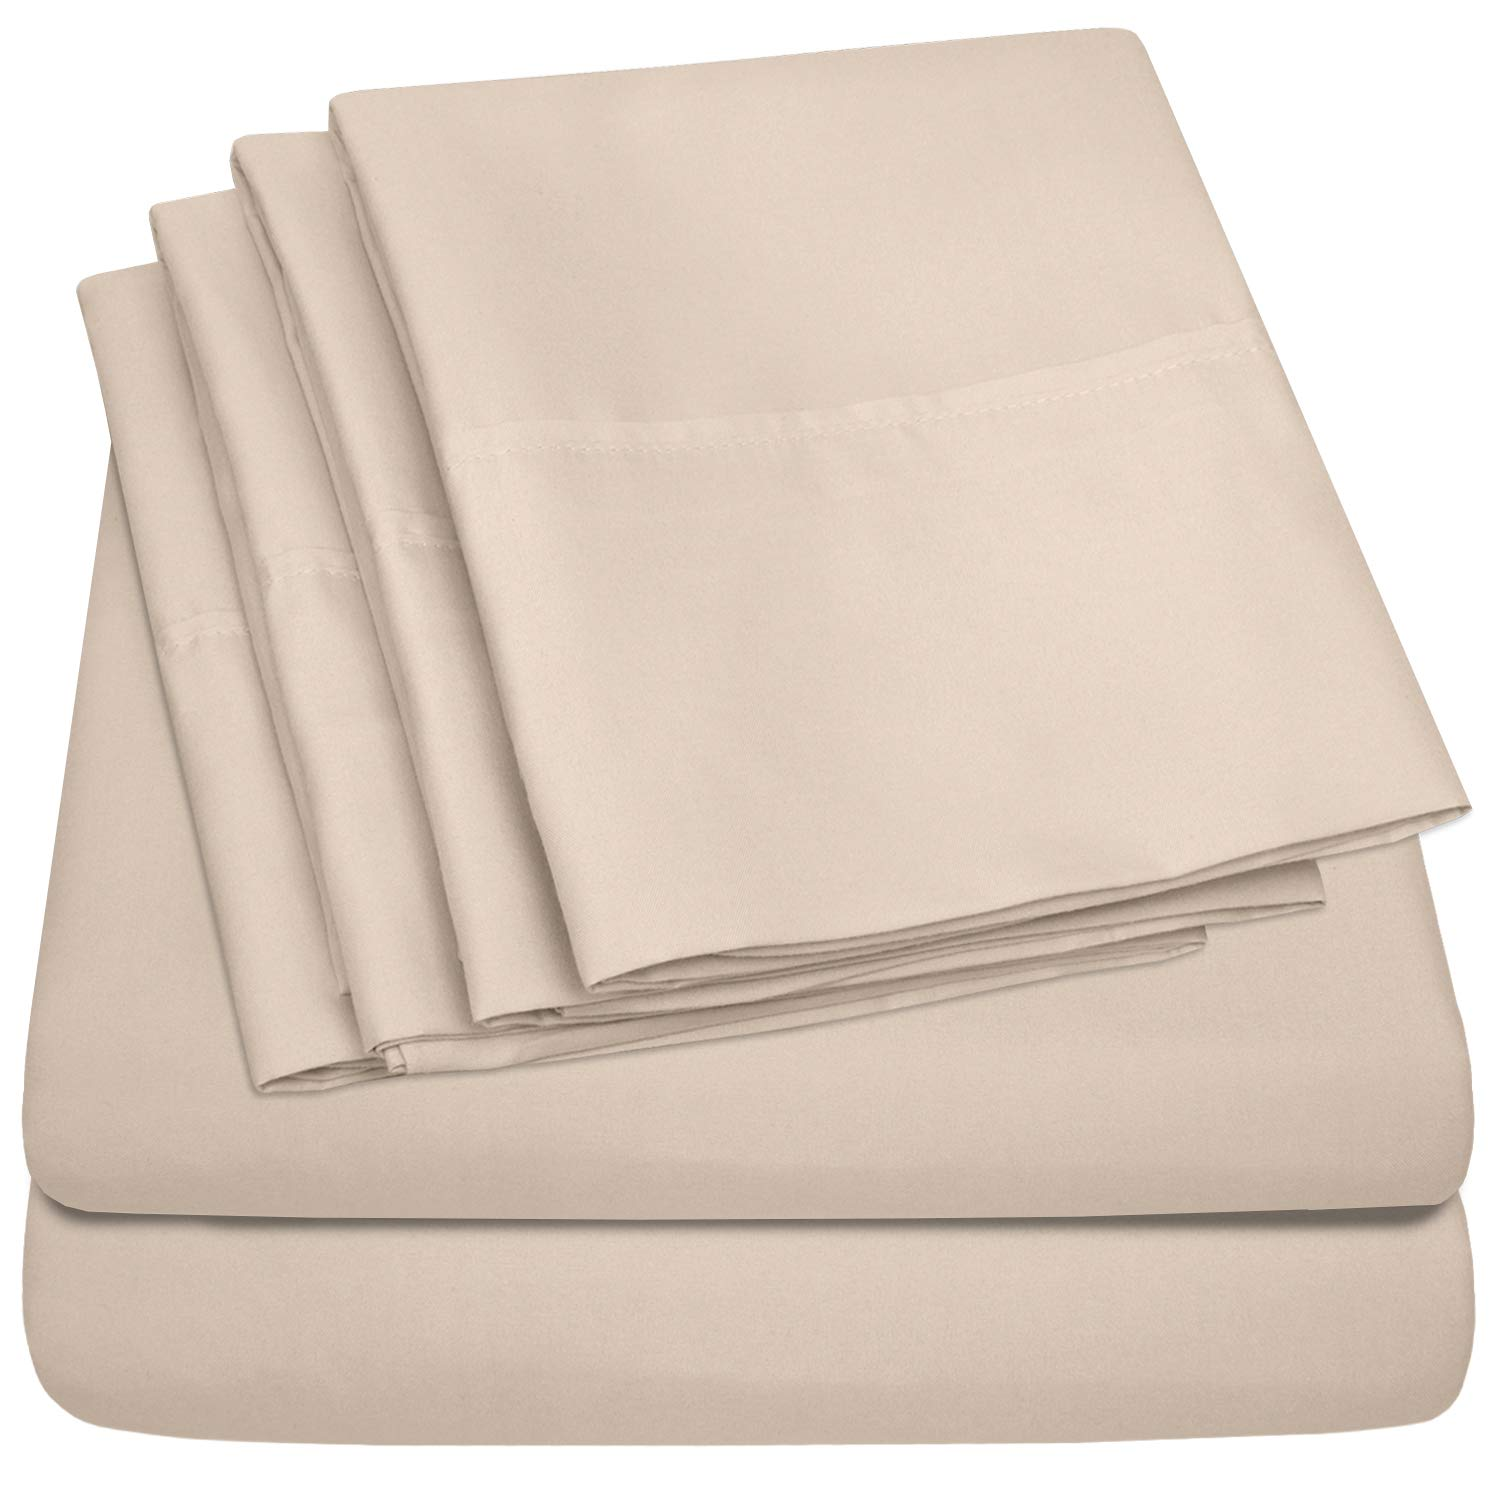 Sweet Home Collection Size 4 Piece 1500 Thread Count Fine Brushed Microfiber Deep Pocket Twin Sheet Set Bedding-1 EXTRA PILLOW CASES, VALUE, Beige